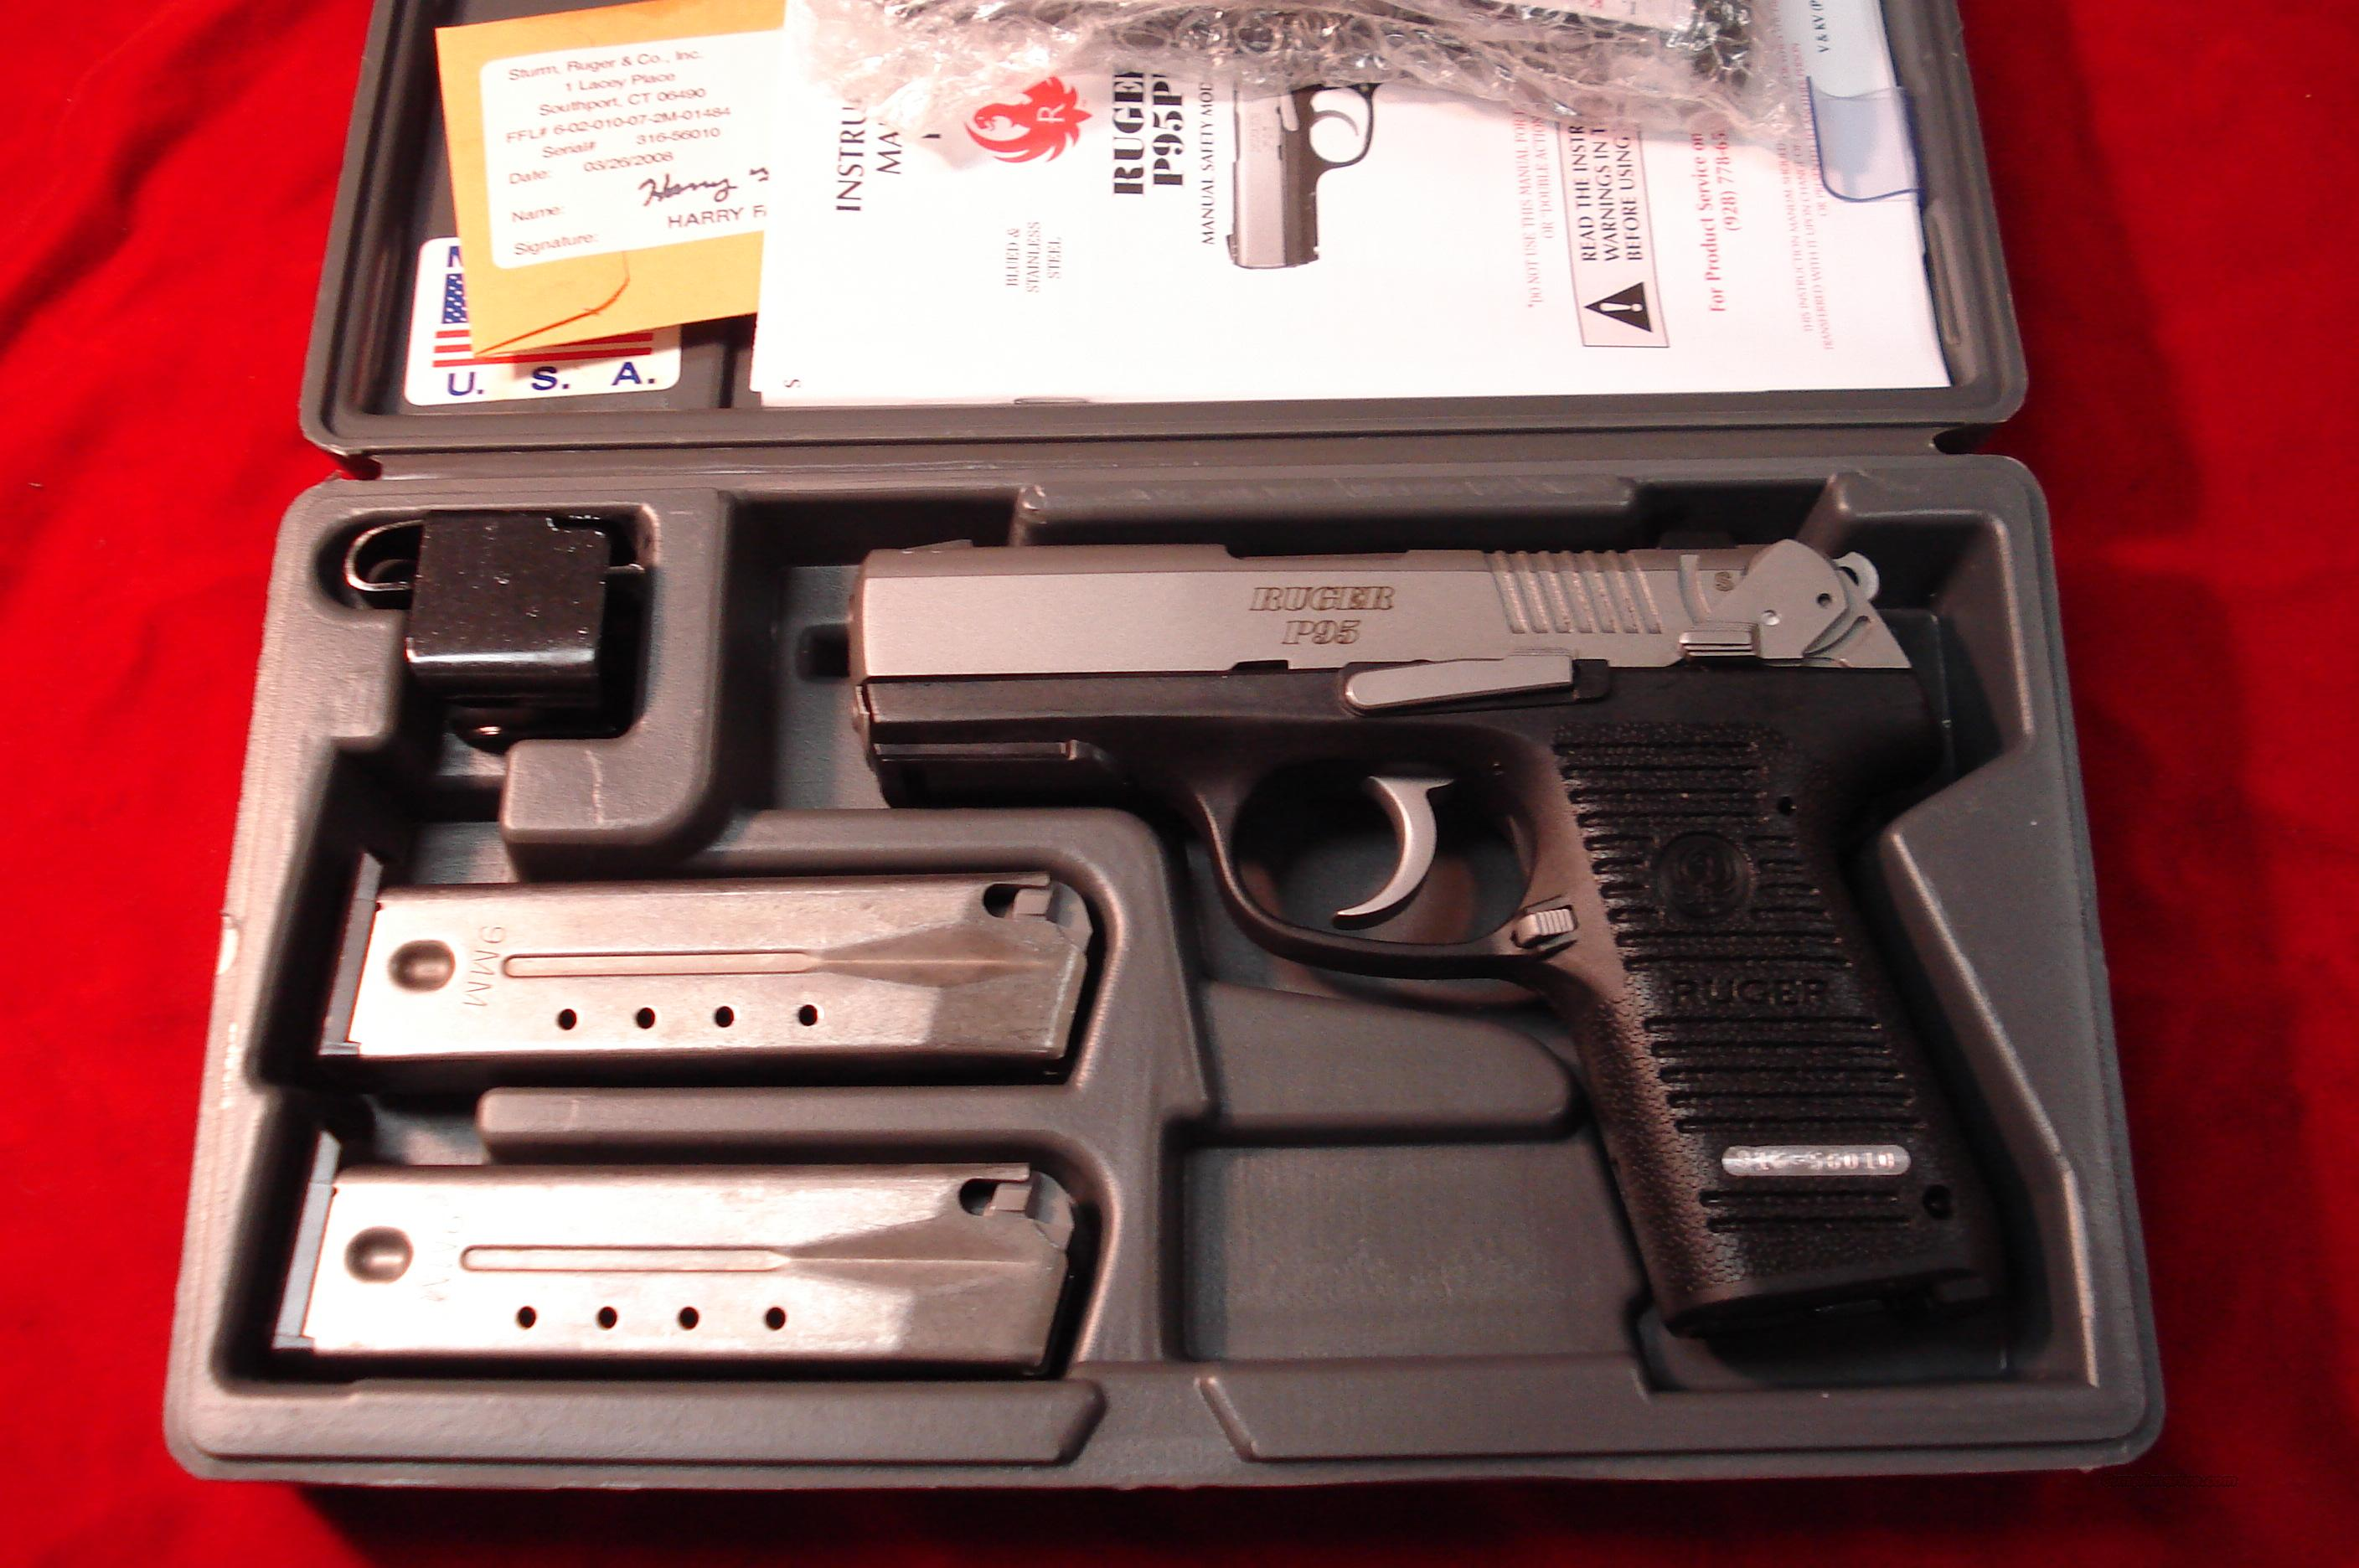 RUGER KP95 9MM STAINLESS W/RAIL NEW   (KP95PR15)  Guns > Pistols > Ruger Semi-Auto Pistols > P-Series